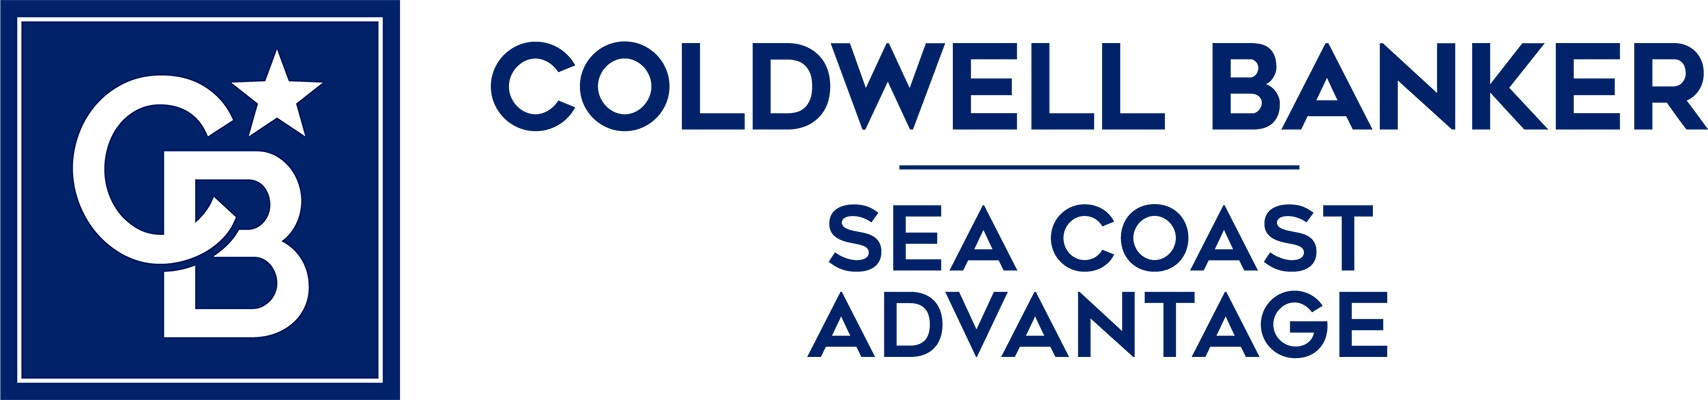 Ted Smith - Coldwell Banker Sea Coast Advantage Realty